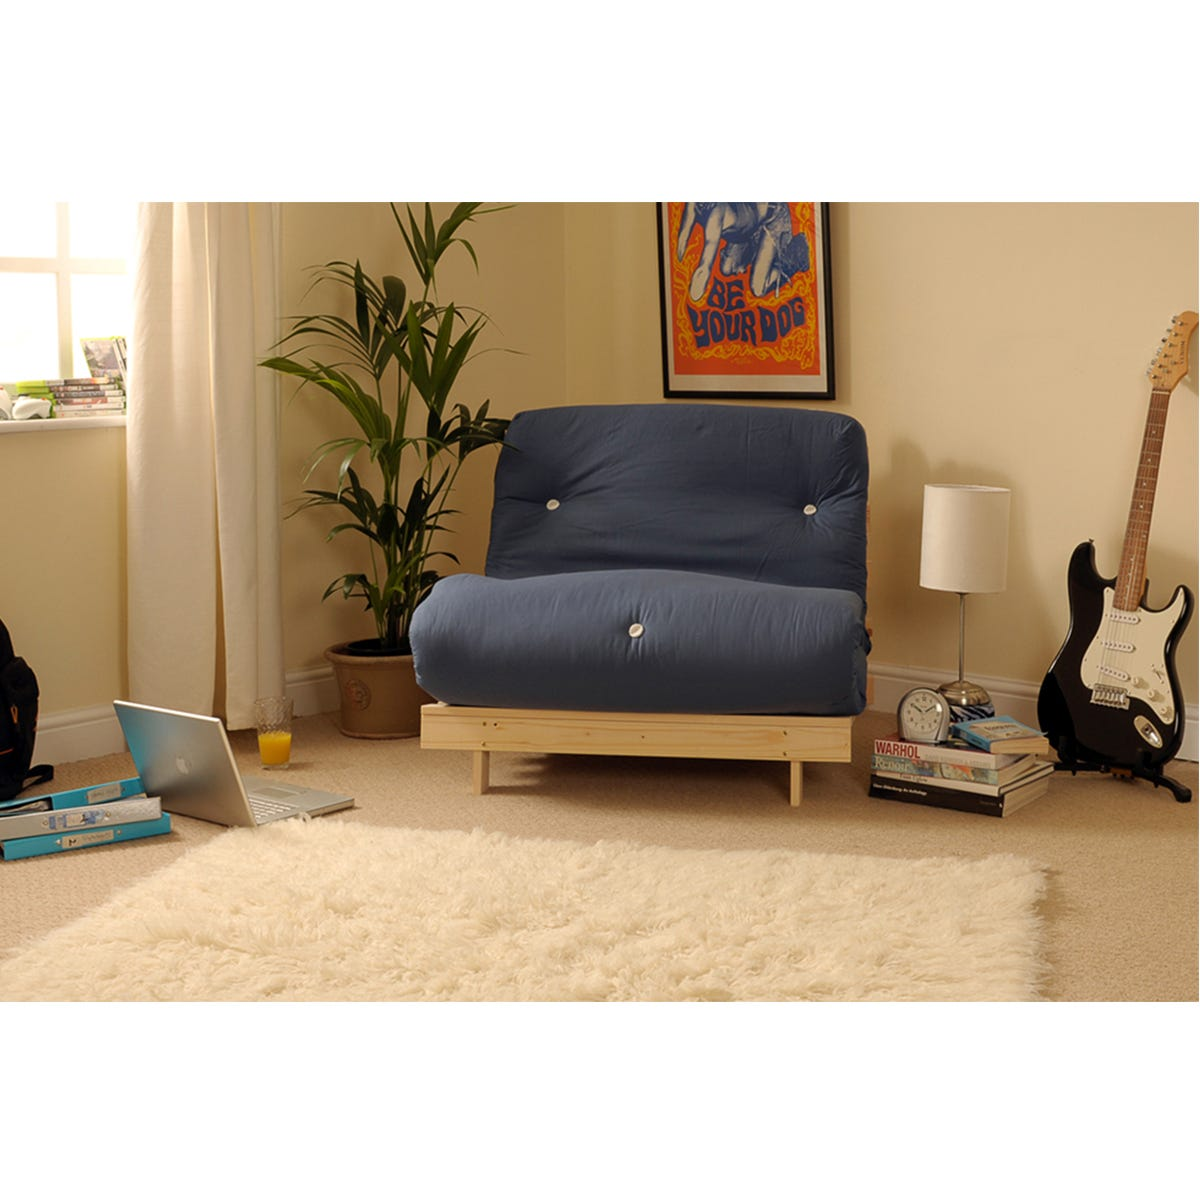 Albury Double Sofa Bed Set With Tufted Mattress - Navy